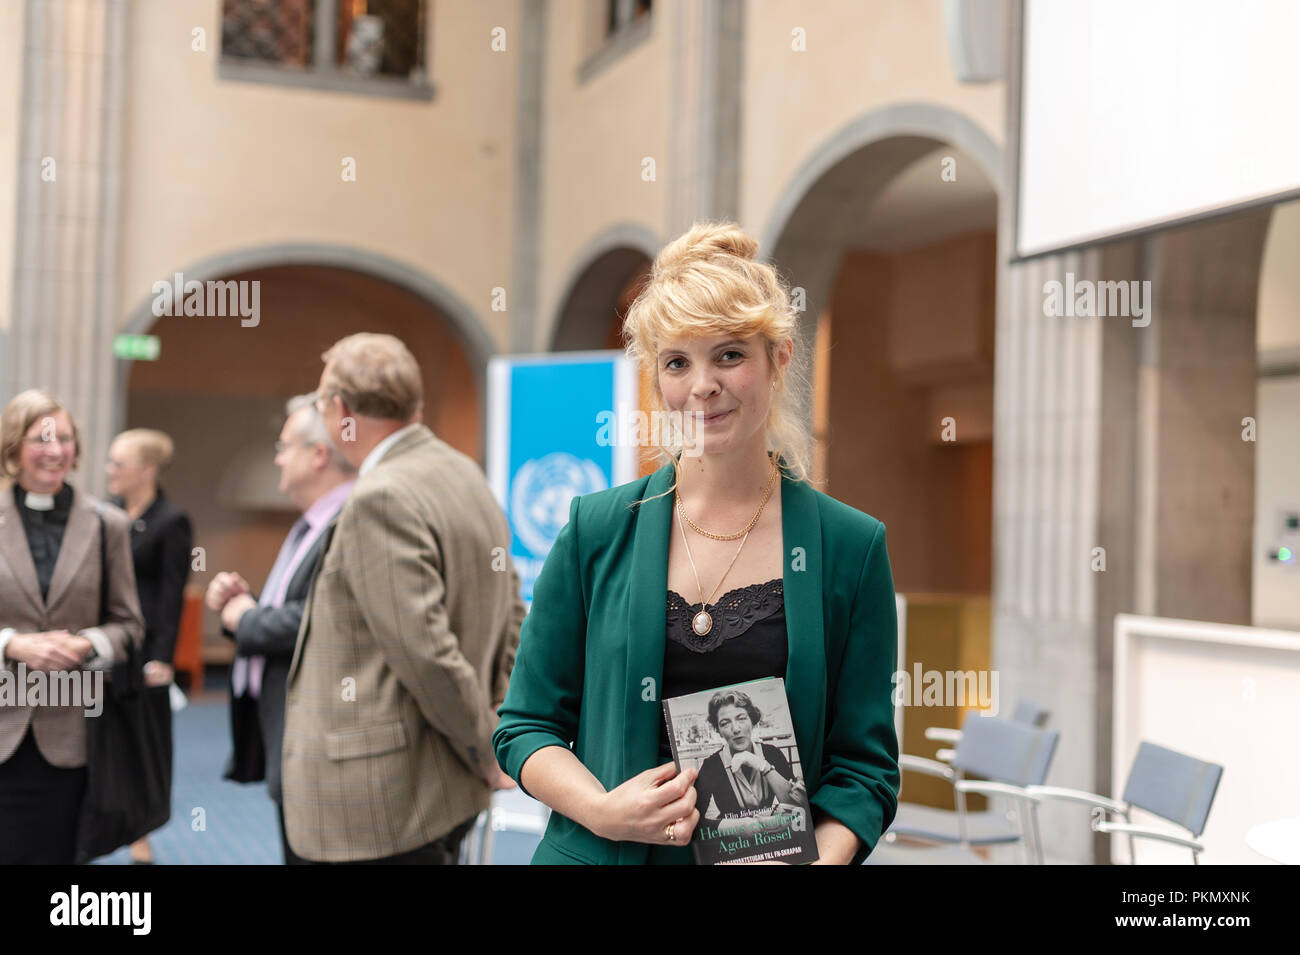 """Stockholm, Sweden, September 14, 2018. Seminar about Agda Rössel (1910-2001) Sweden's and the world's first female UN ambassador. Presentation of the book """"Her Excellency Agda Rössel: from Lineman cottage to the UN Scraper """"by author Elin Jäderström. The author Elin Jäderström. The seminar is held at the Ministry of Foreign Affairs. Credit: Barbro Bergfeldt/Alamy Live News Stock Photo"""